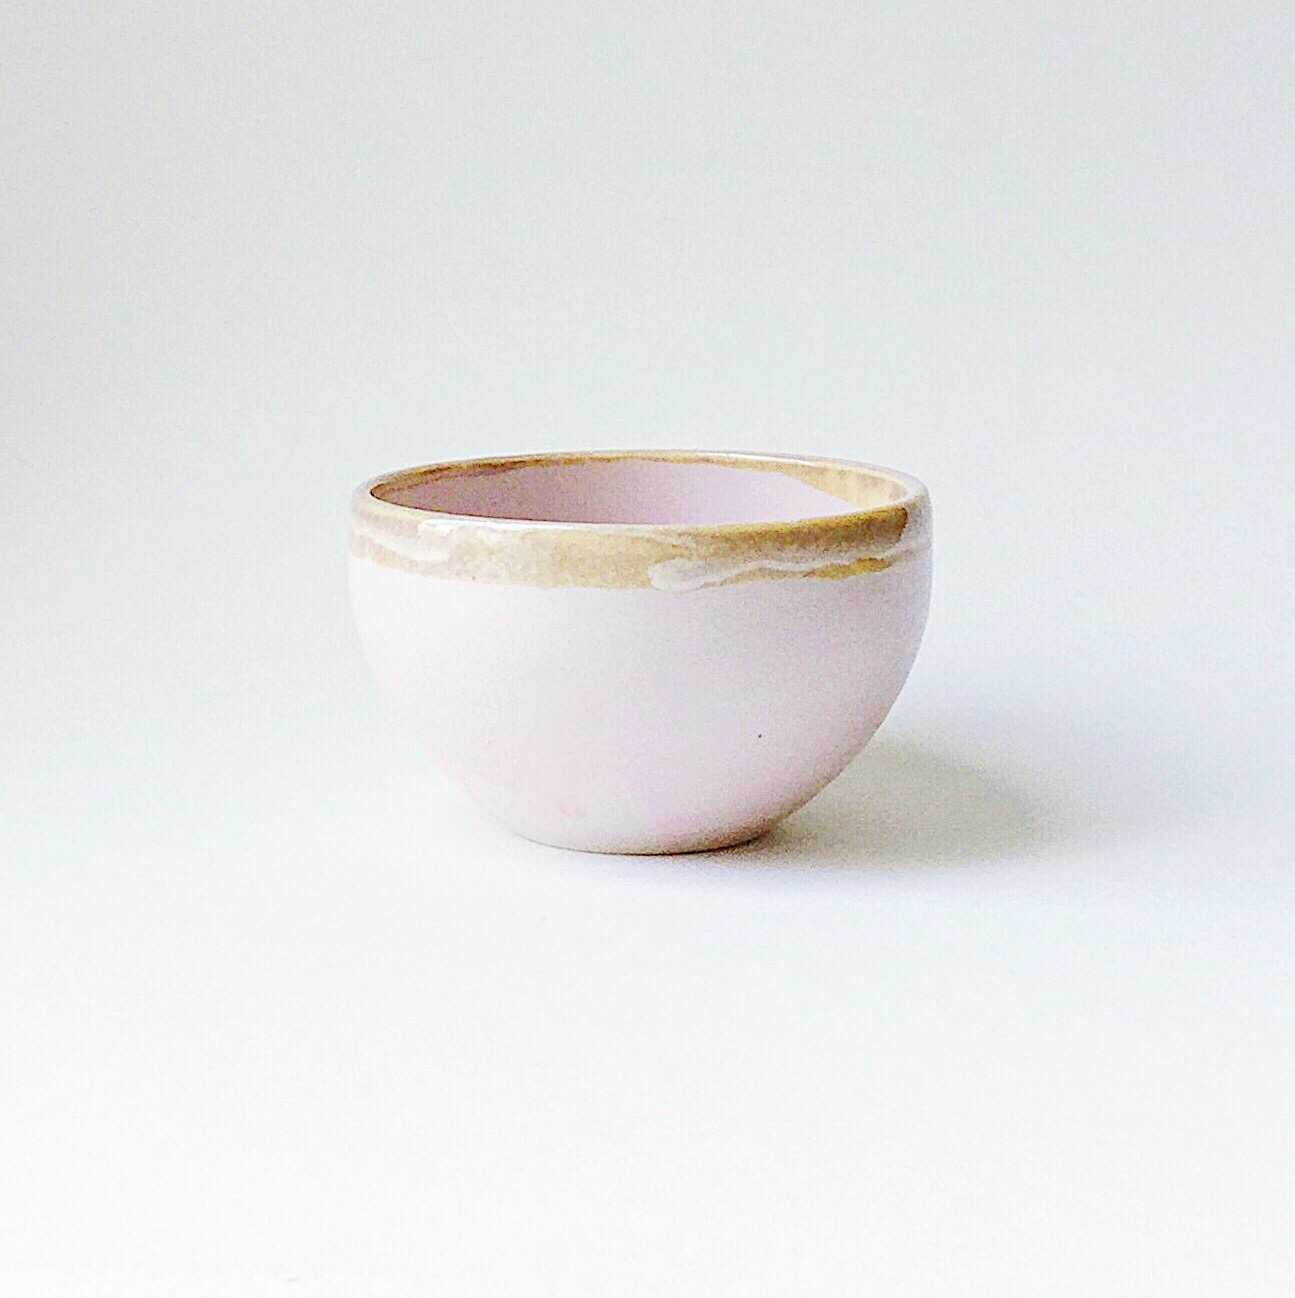 Japan series : Little pink bowl